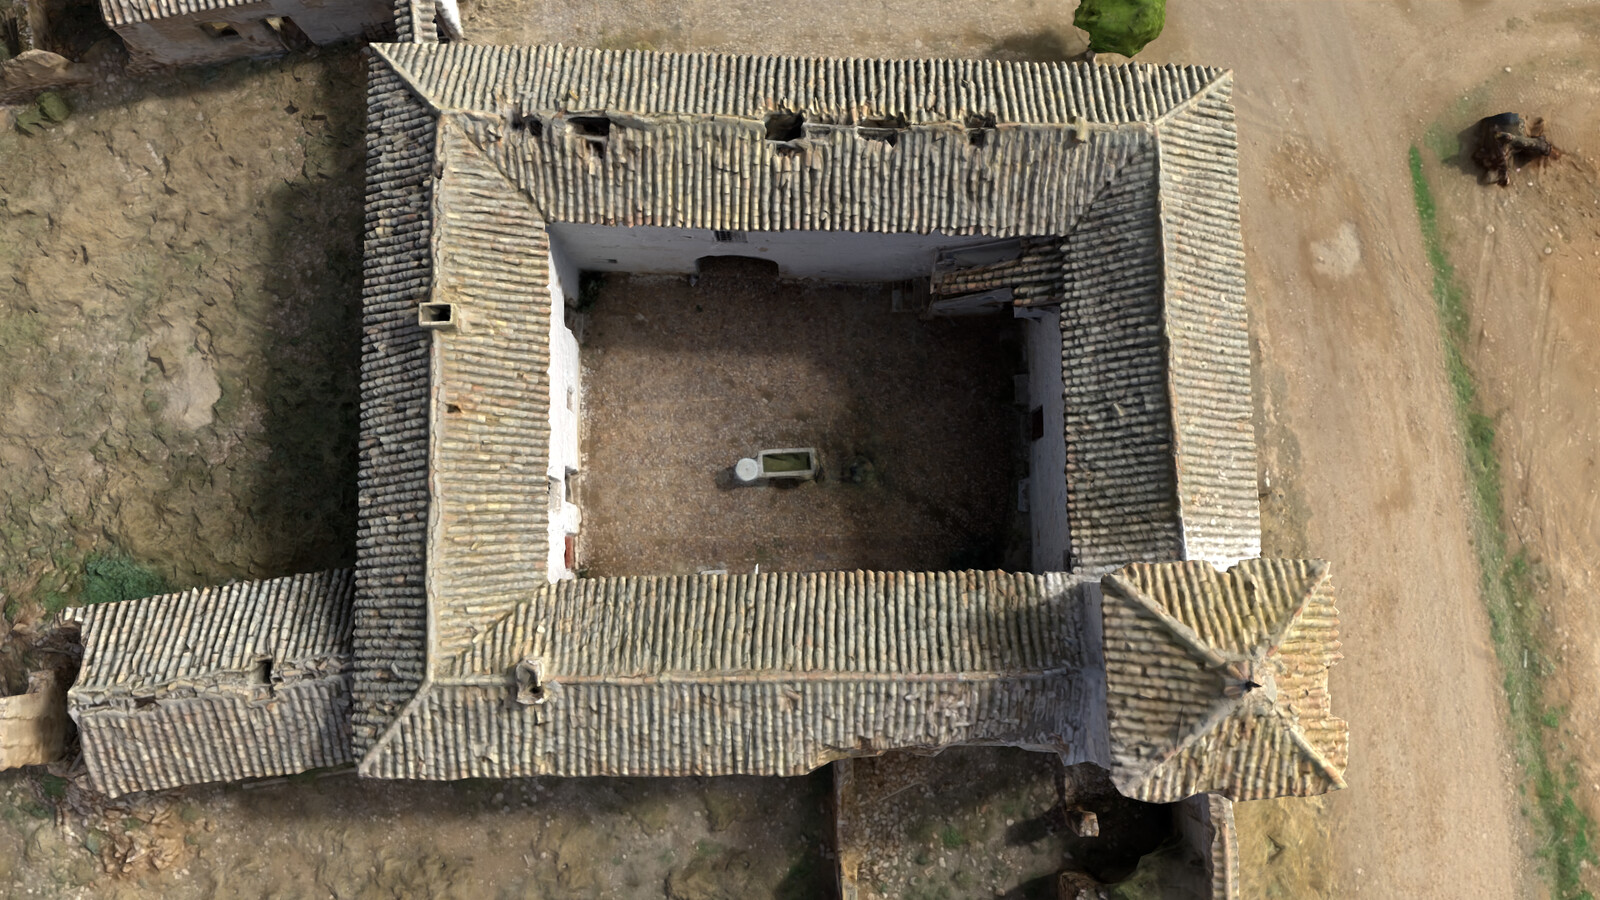 Top view of the monument